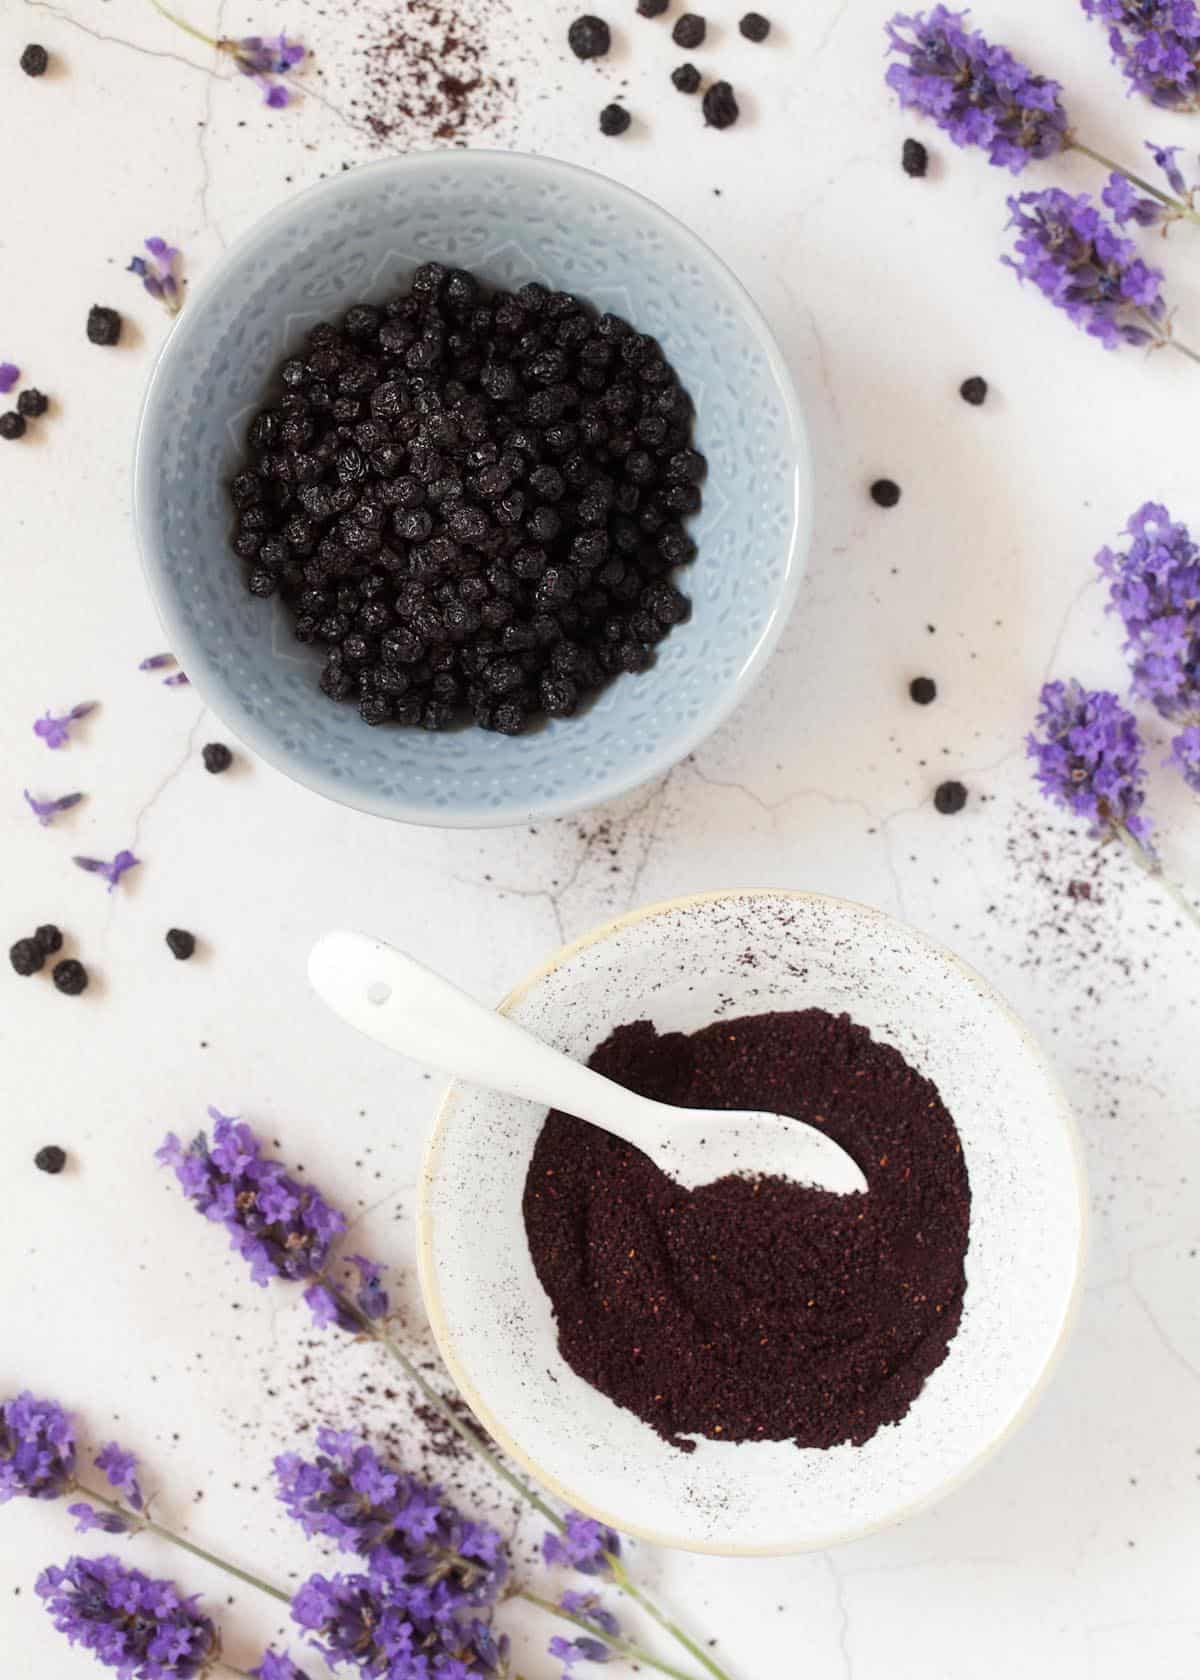 Bilberry fruit powder and dried blueberries in small bowls